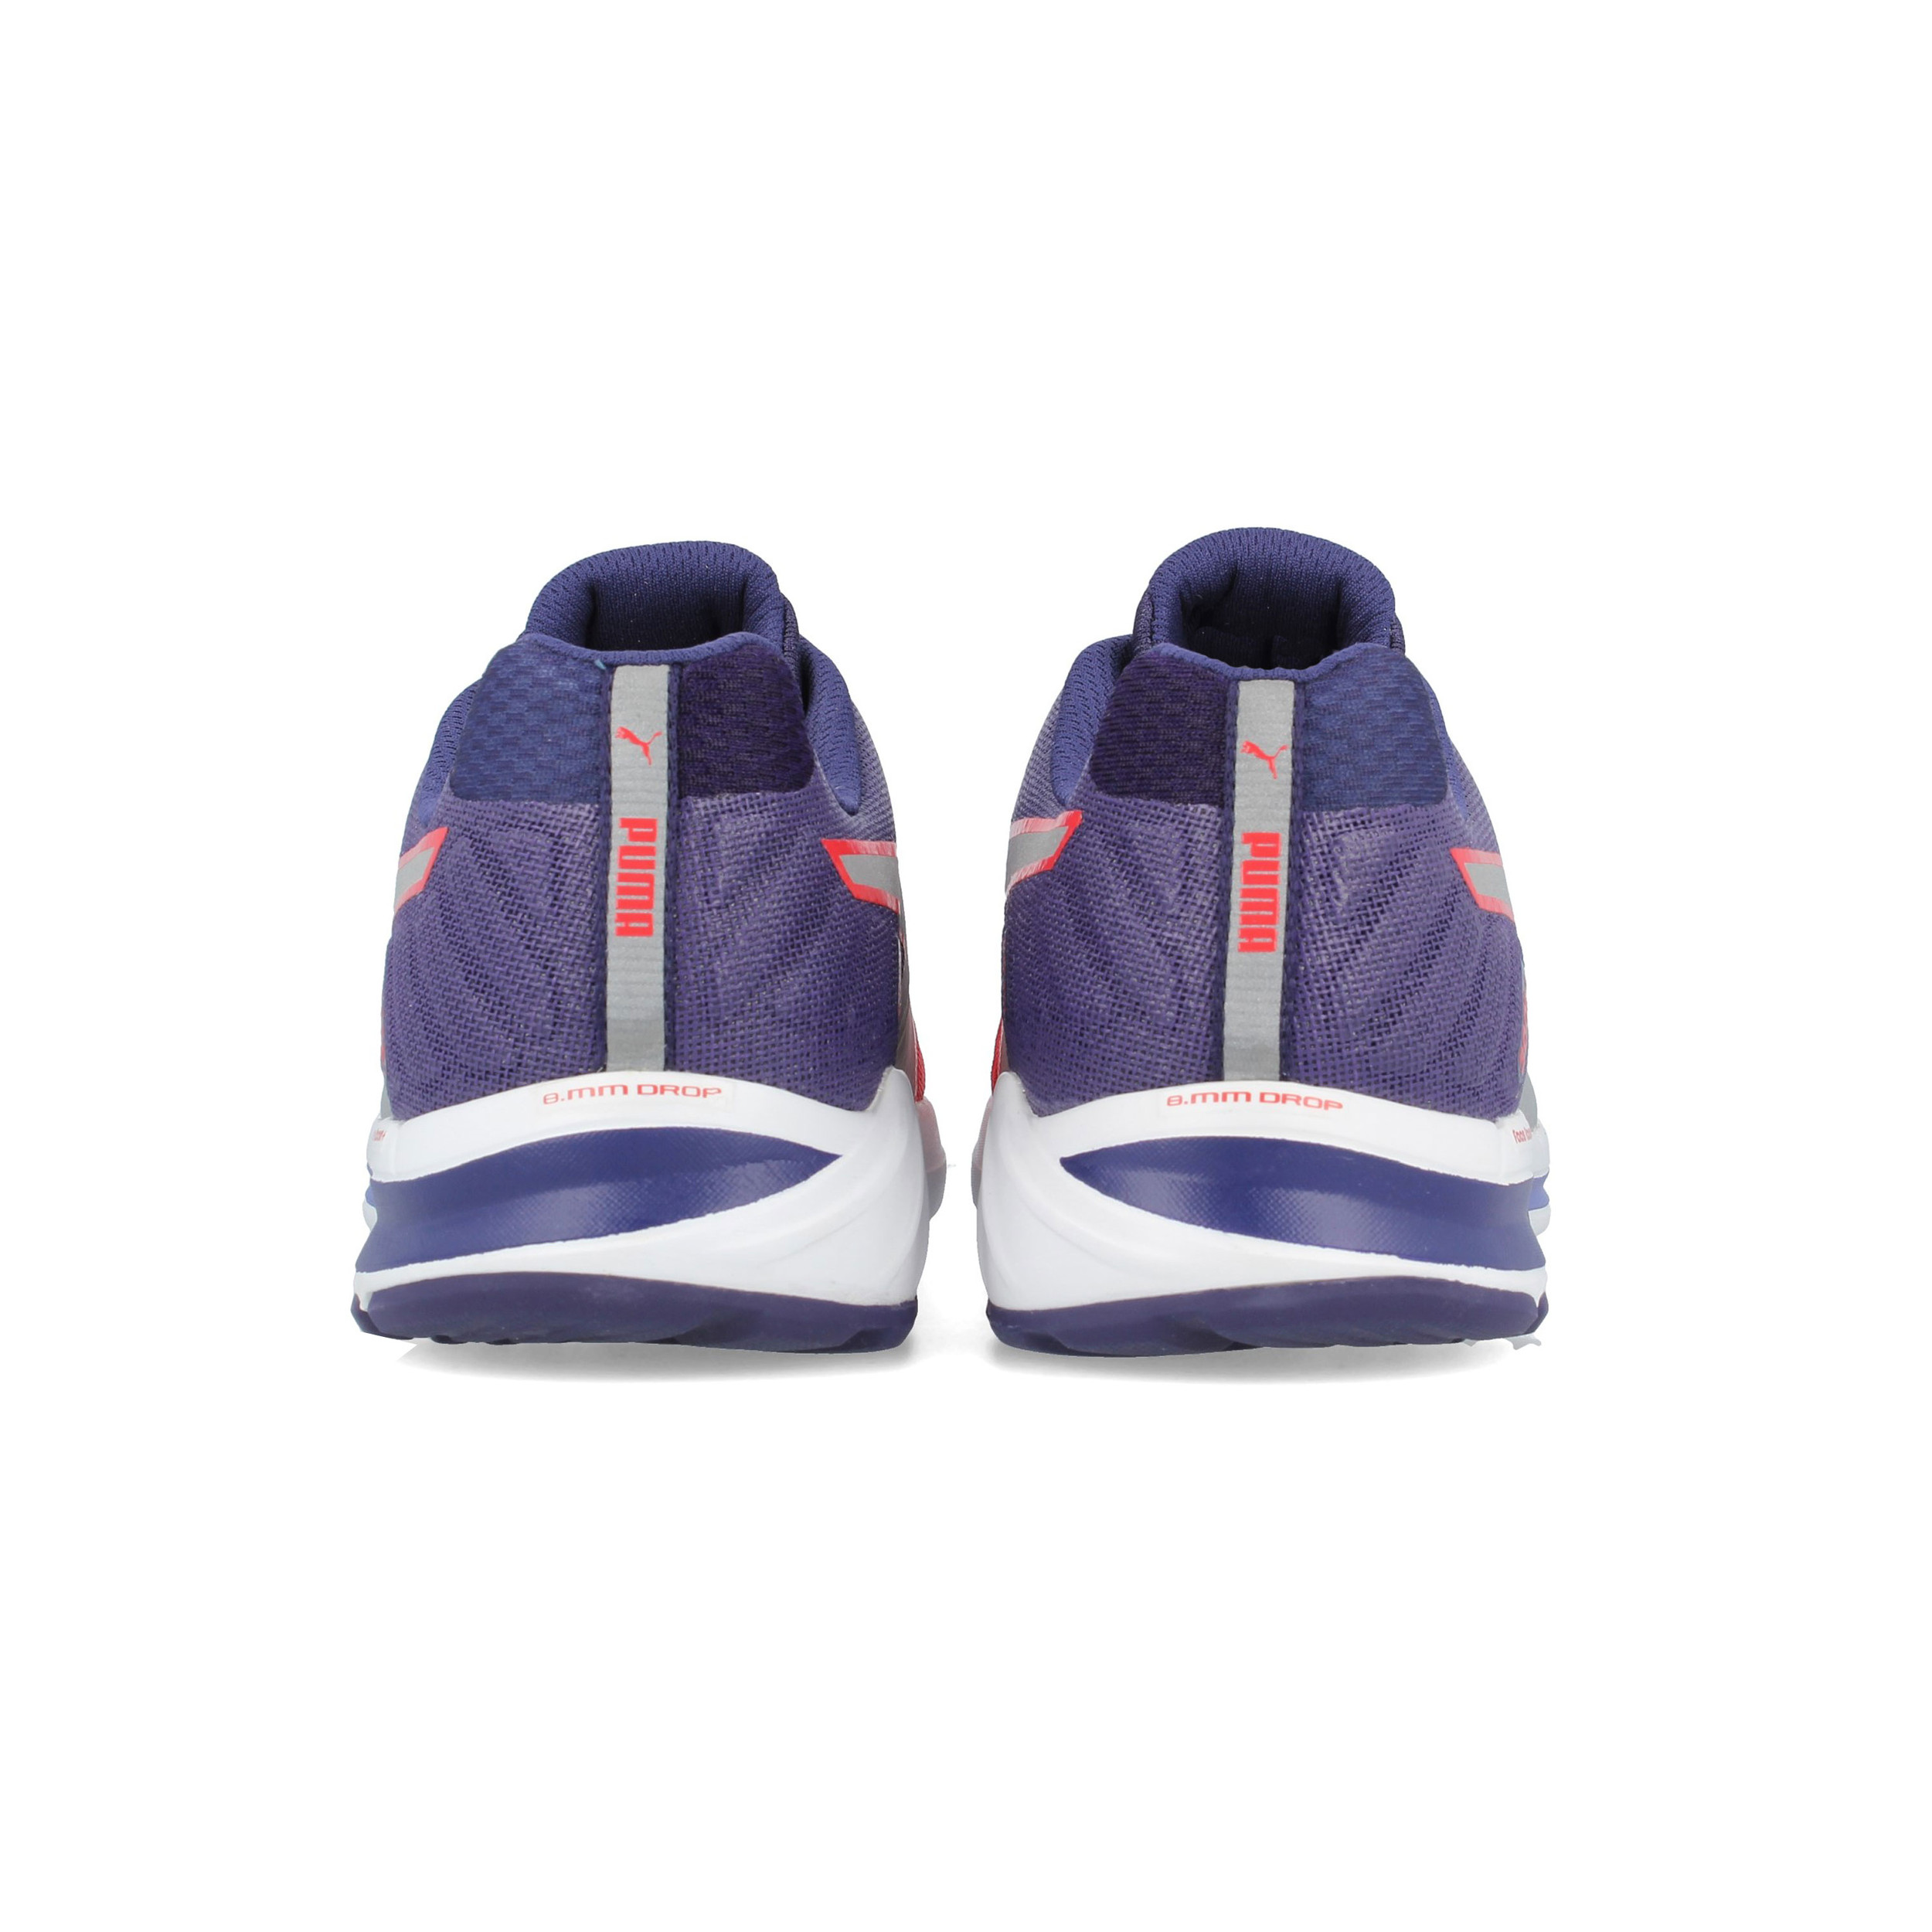 Details about Puma Womens Faas 300 S v2 Running Shoes Trainers Sneakers Pink Purple